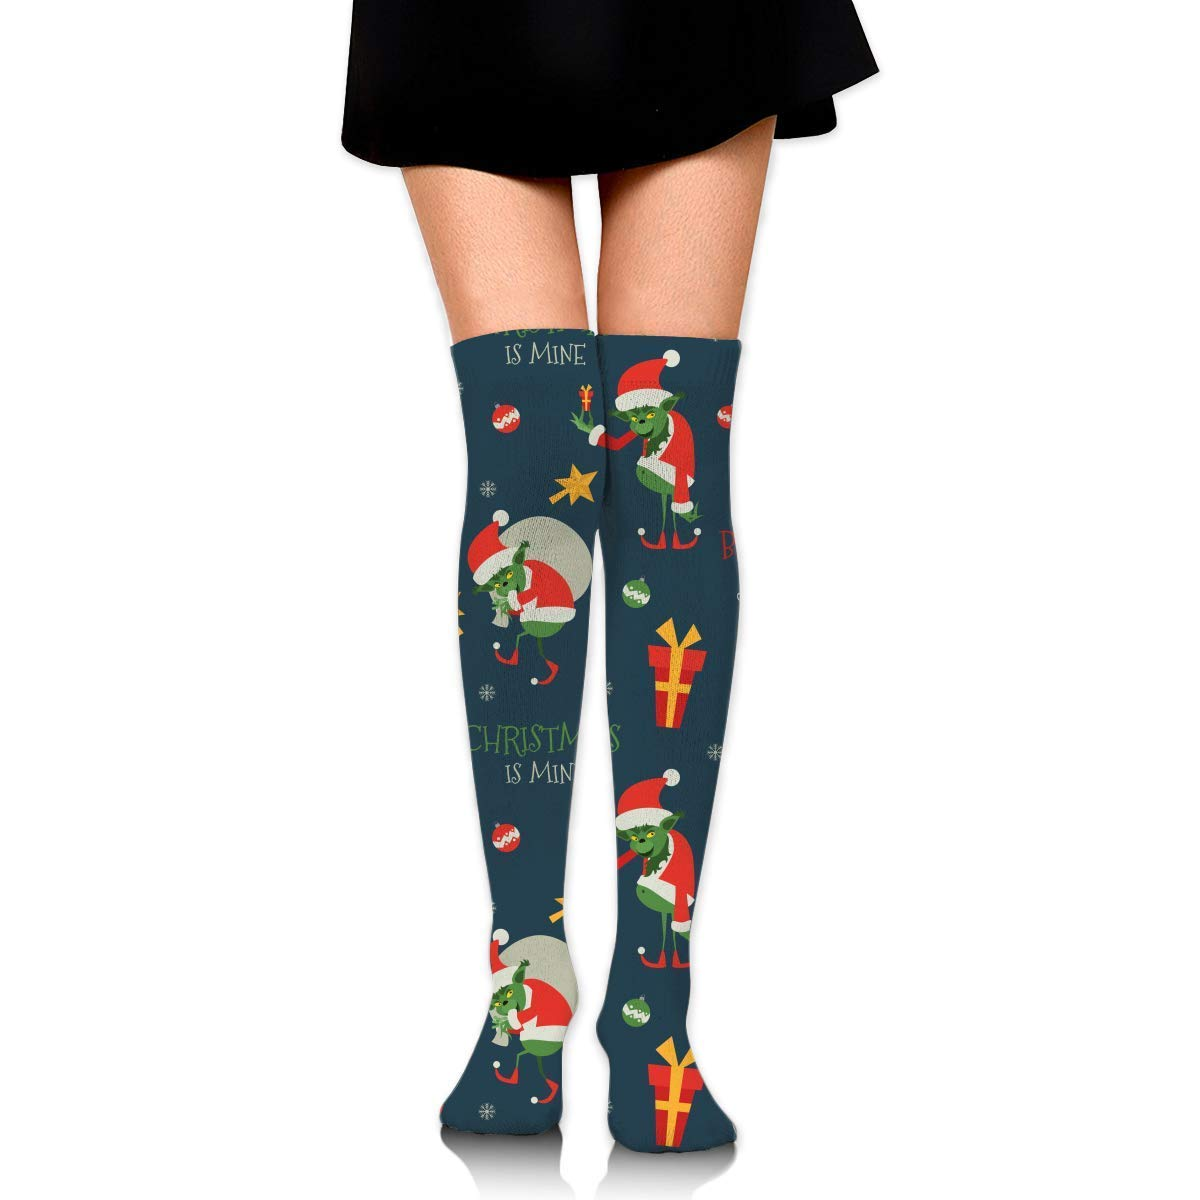 suzhouxiu Grinch Pattern Womens Knee High Socks Long Socks Sport Socks Thin For Running,Medical,Athletic,Travel